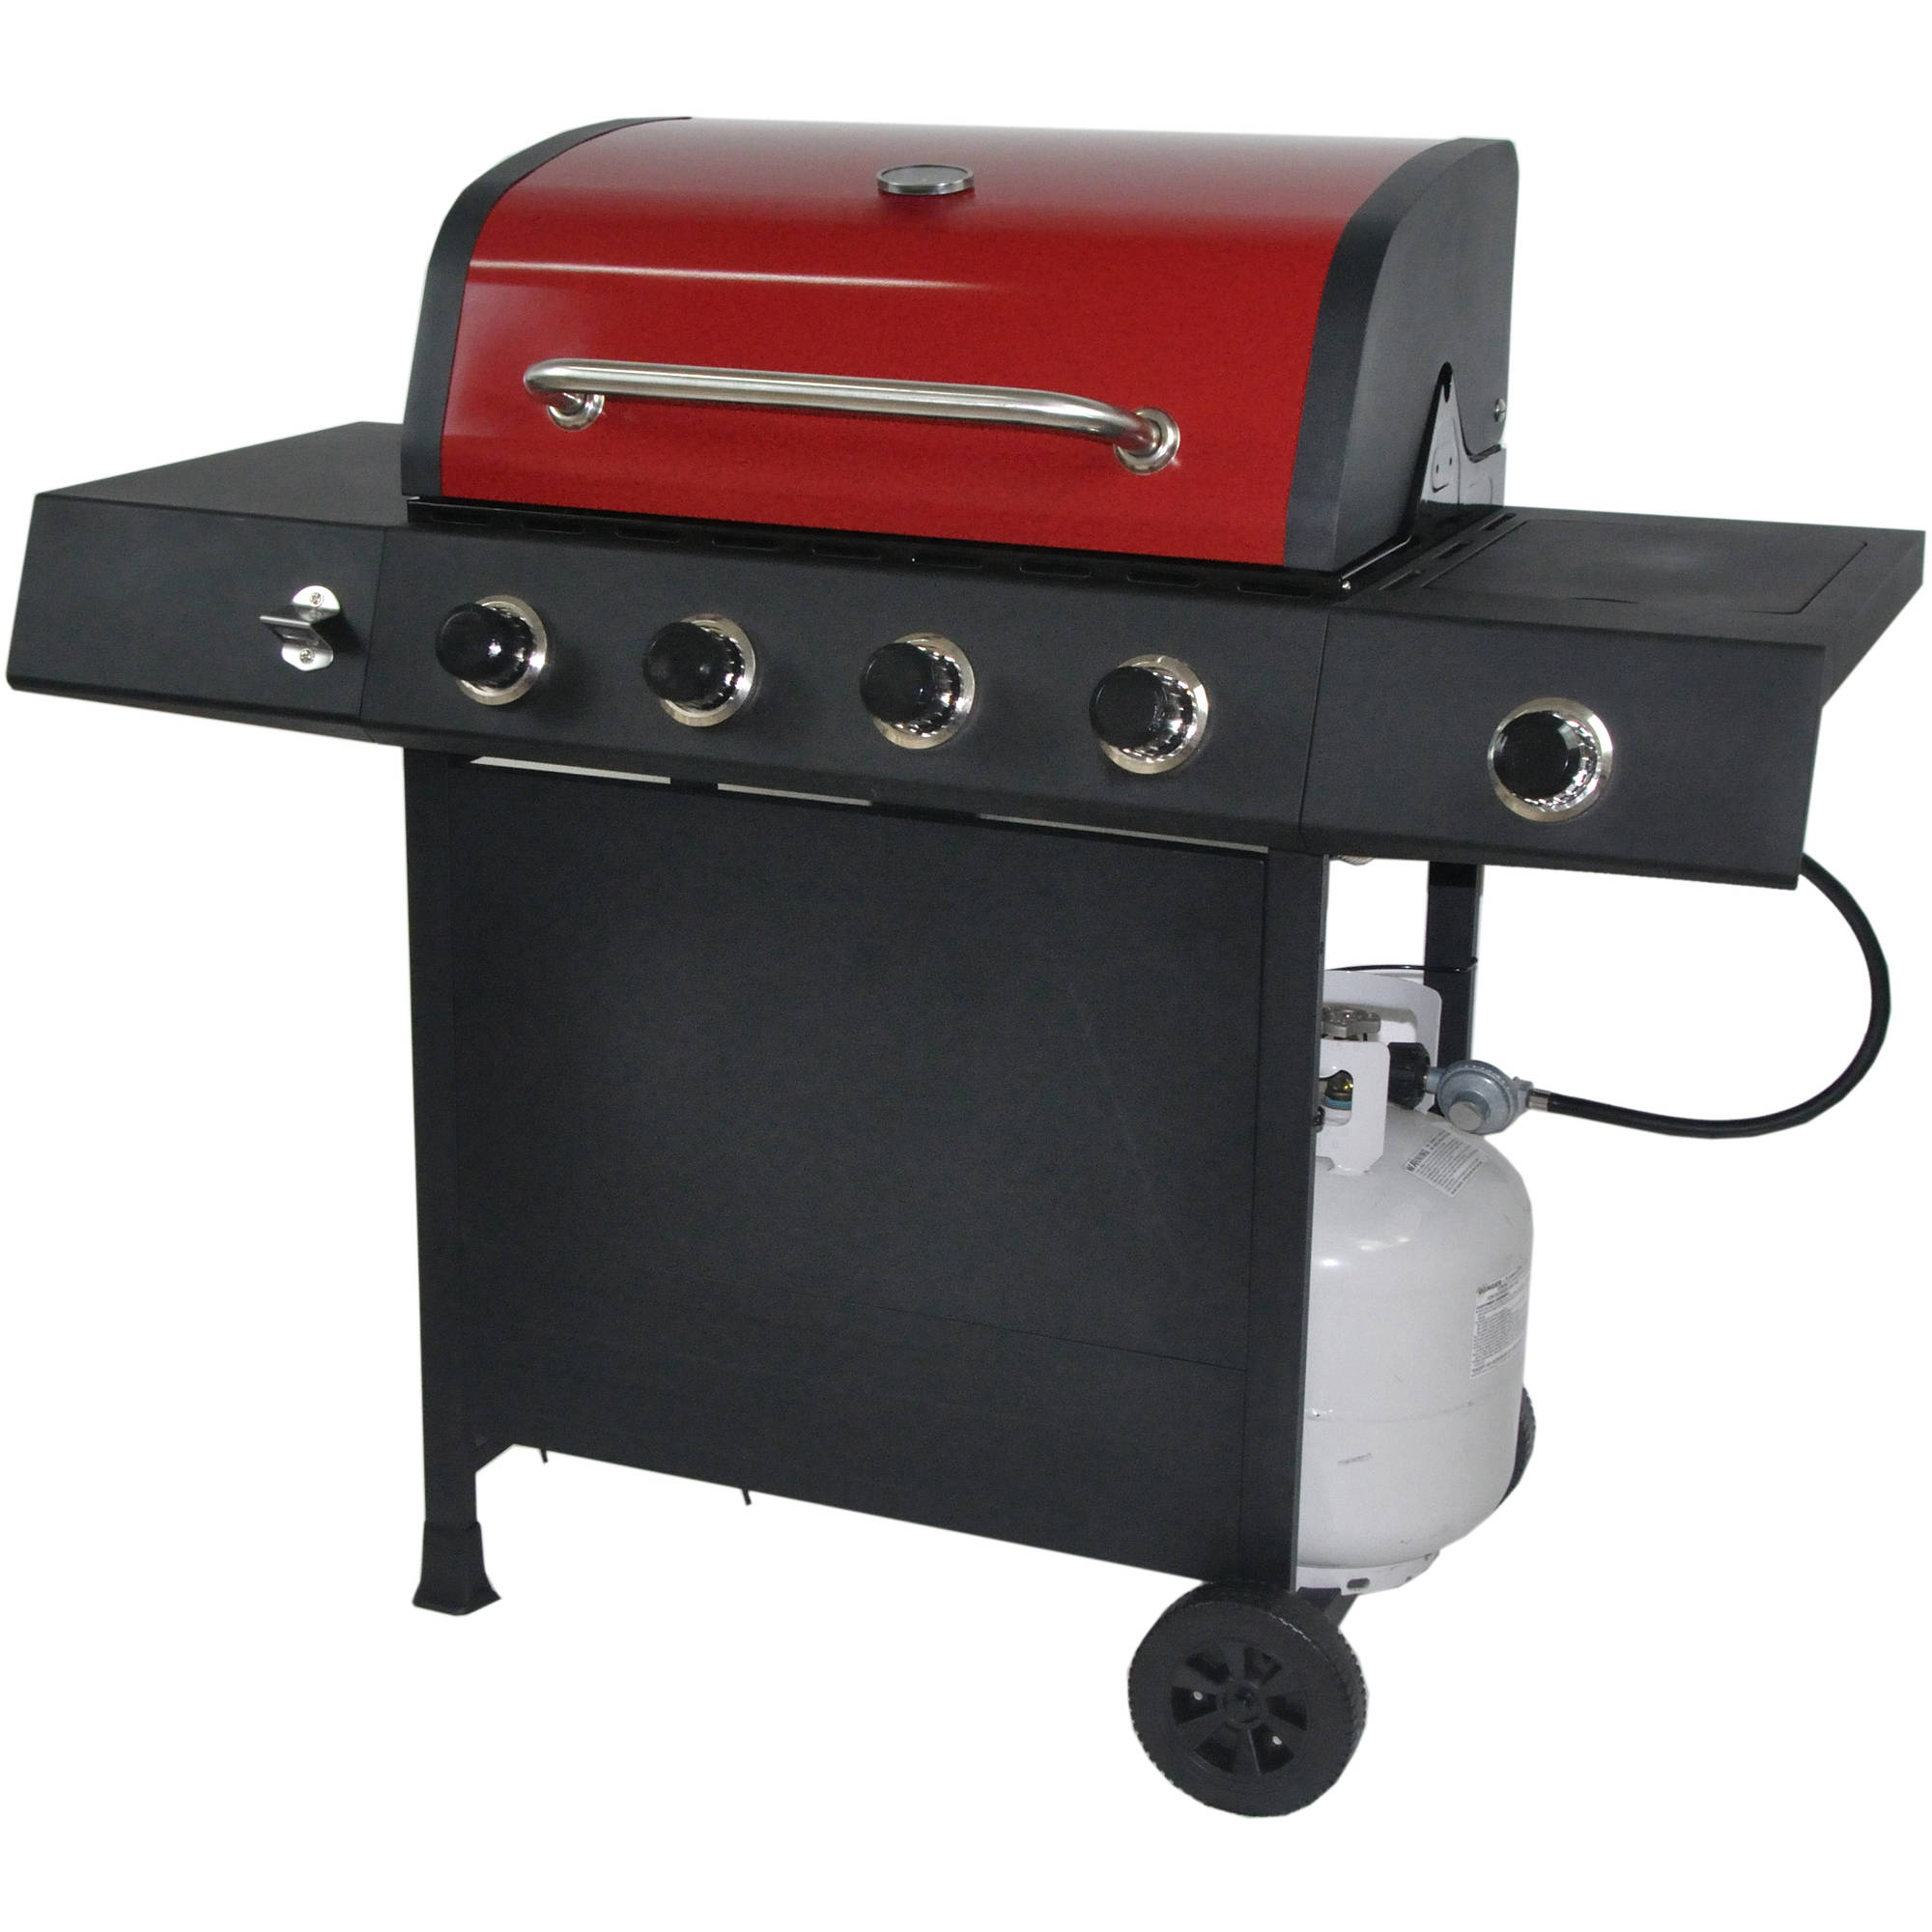 revoace 4 burner lp gas grill with side burner red sedona. Black Bedroom Furniture Sets. Home Design Ideas